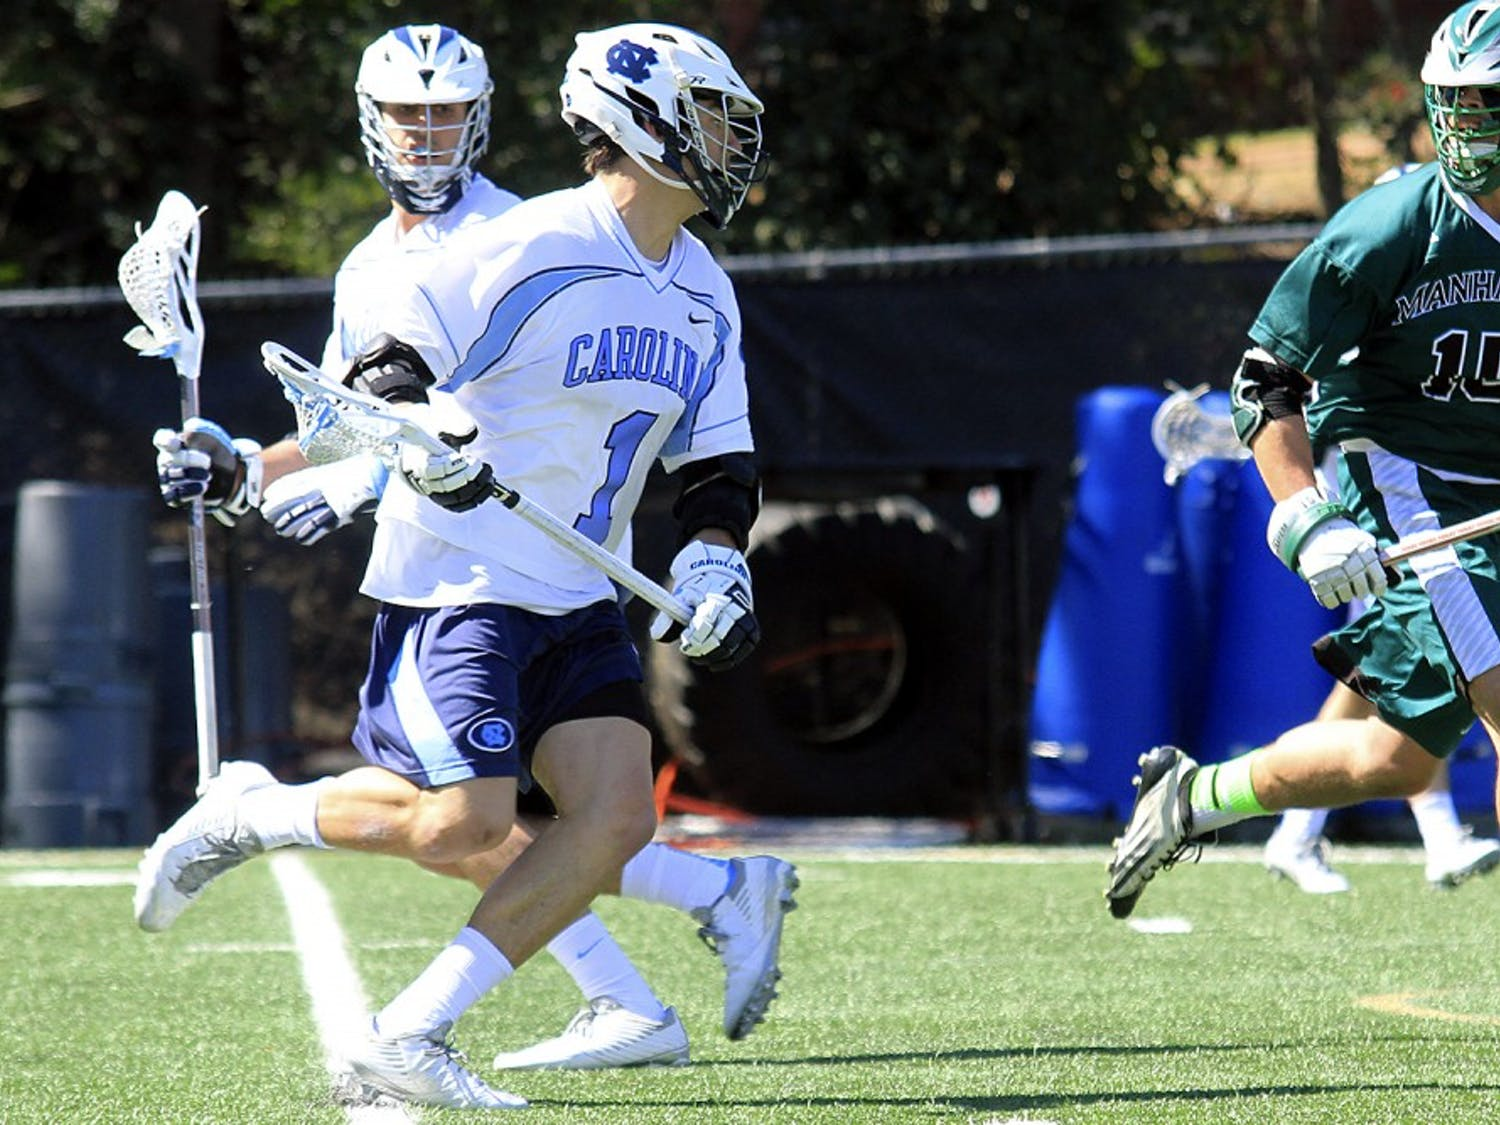 Sophomore Luke Goldstock prepares to shoot against Manhattan as a part of his historic nine-point performance, the most of any Tar Heel since 2012.